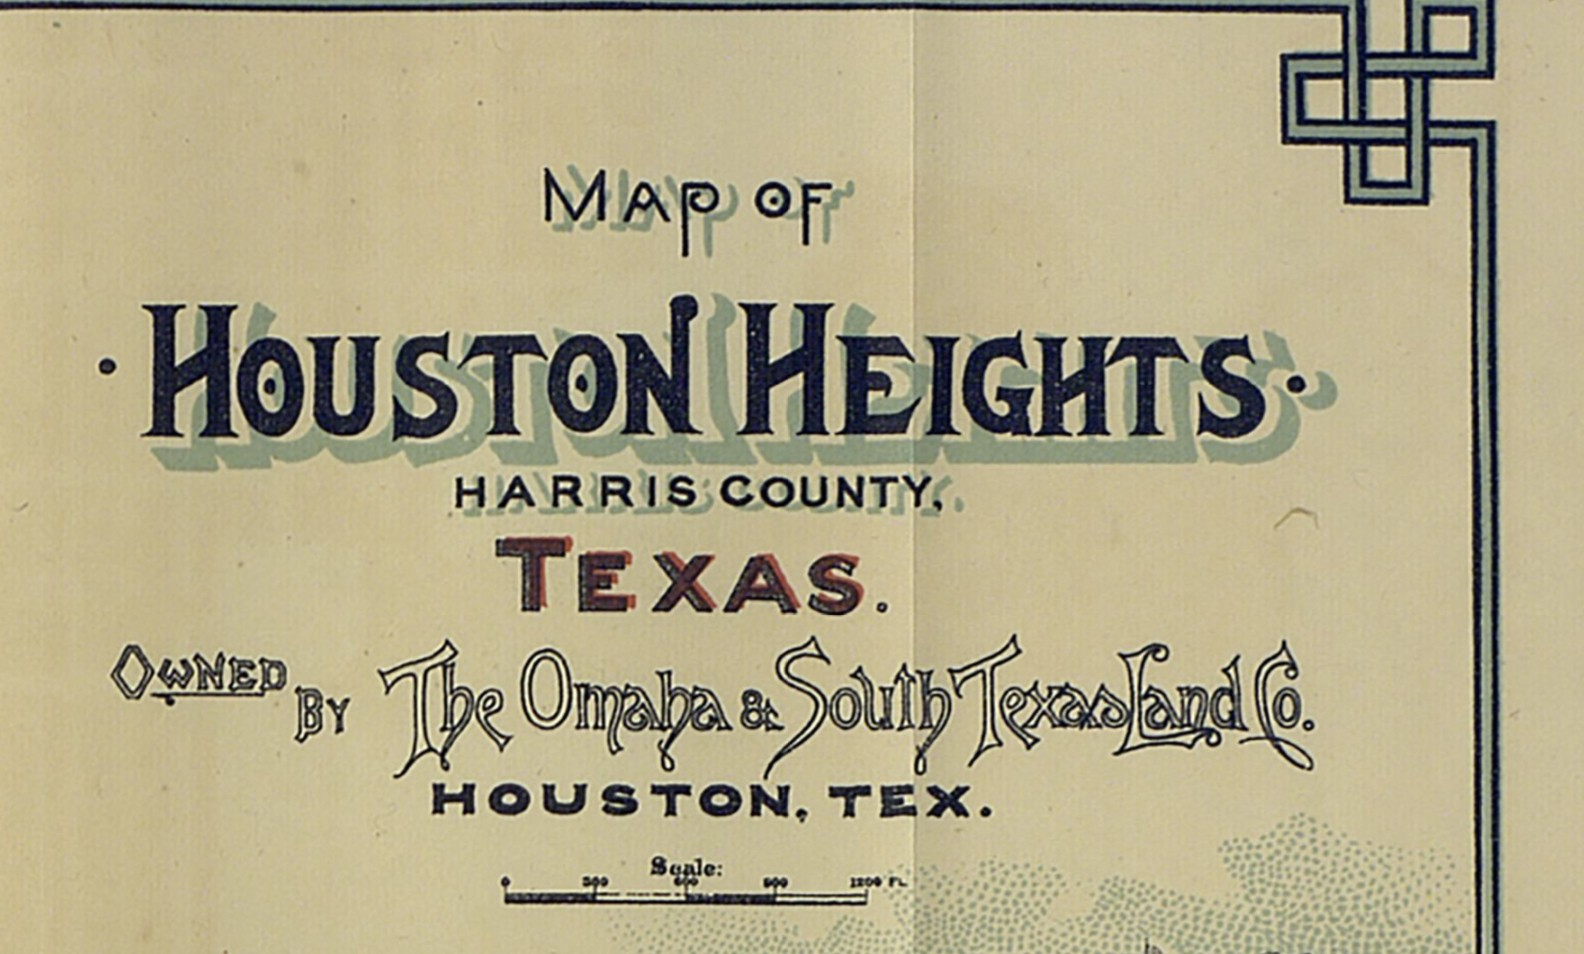 Mapping Houston Heights